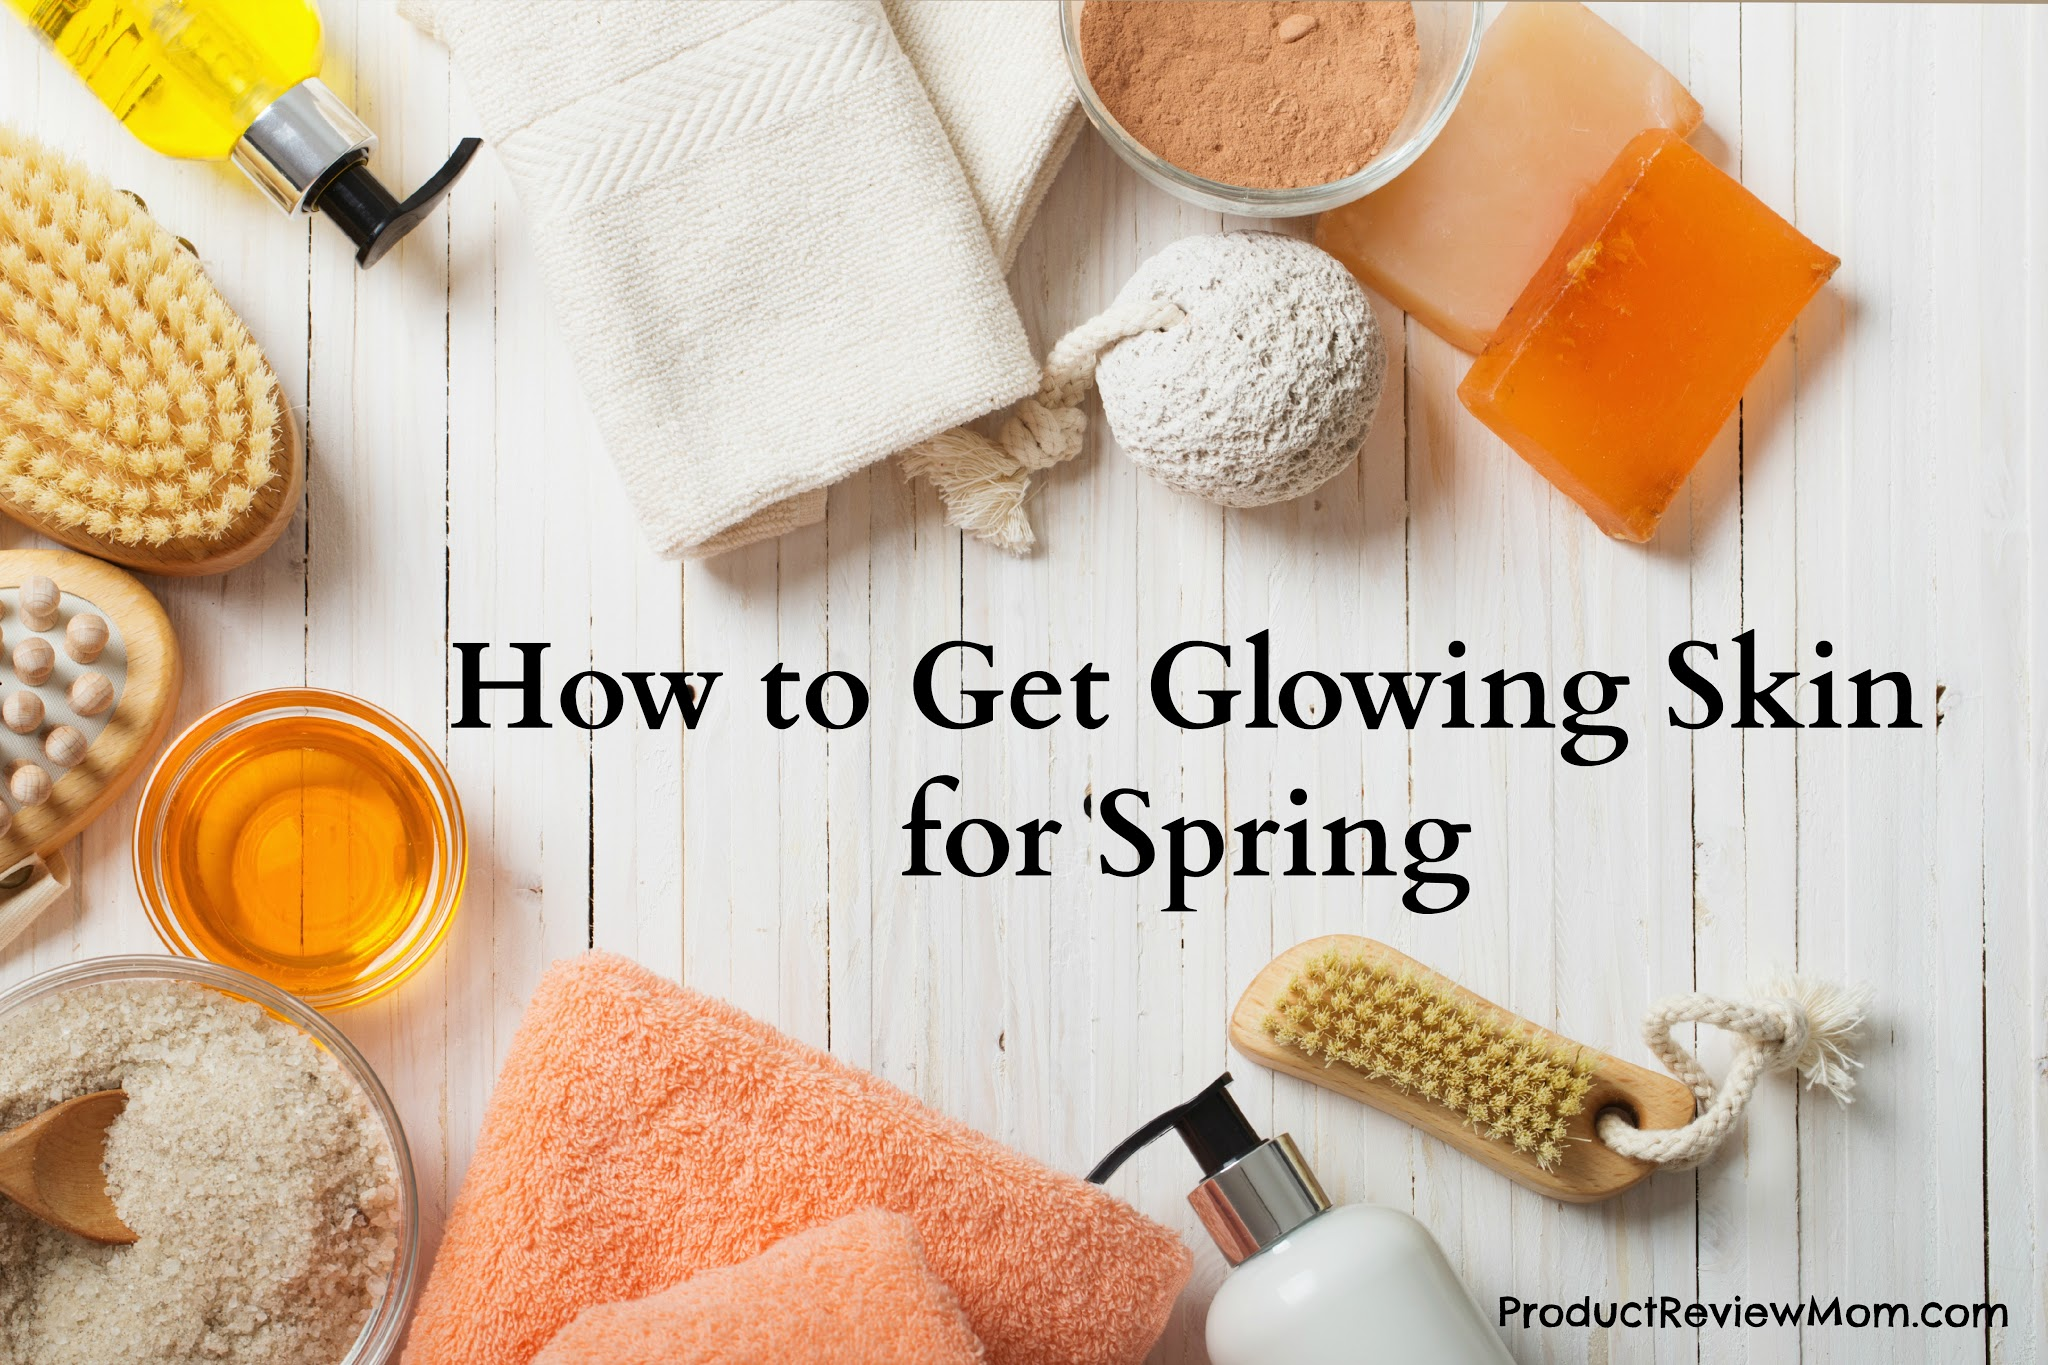 How to Get Glowing Skin for Spring  via  www.productreviewmom.com